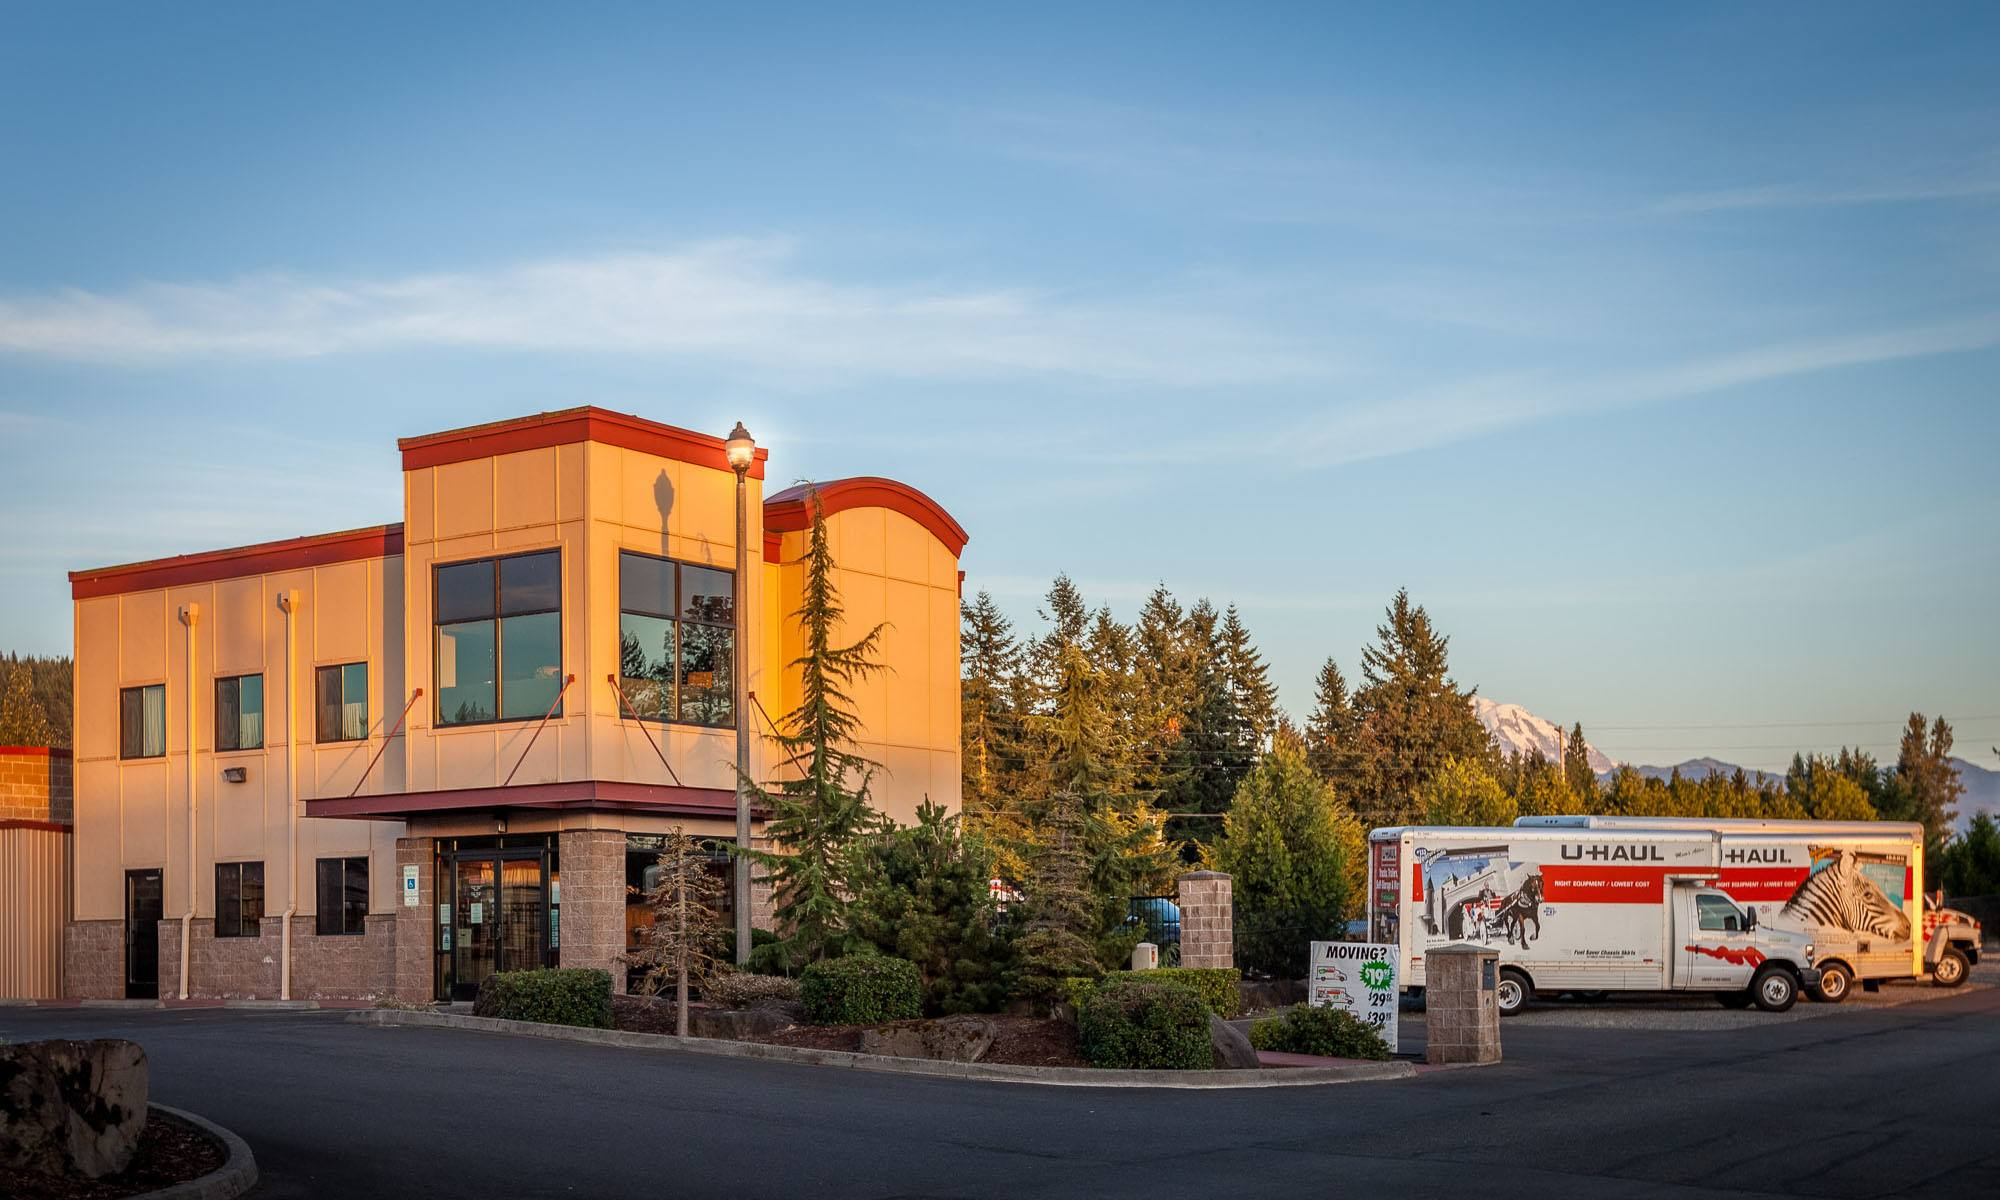 Exterior of self storage facility in Enumclaw, Washington